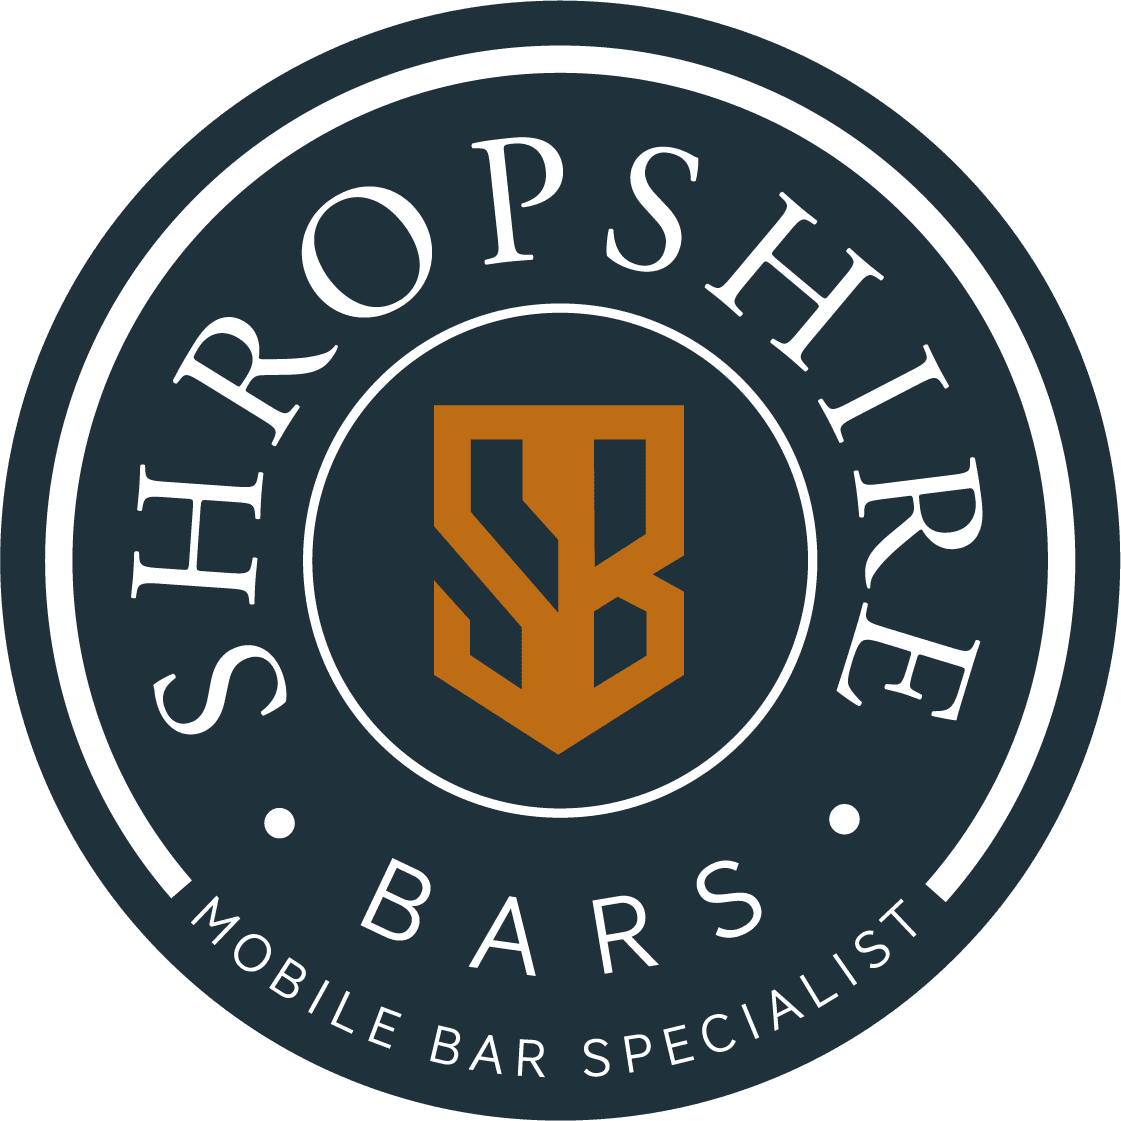 Shropshire mobile Bars